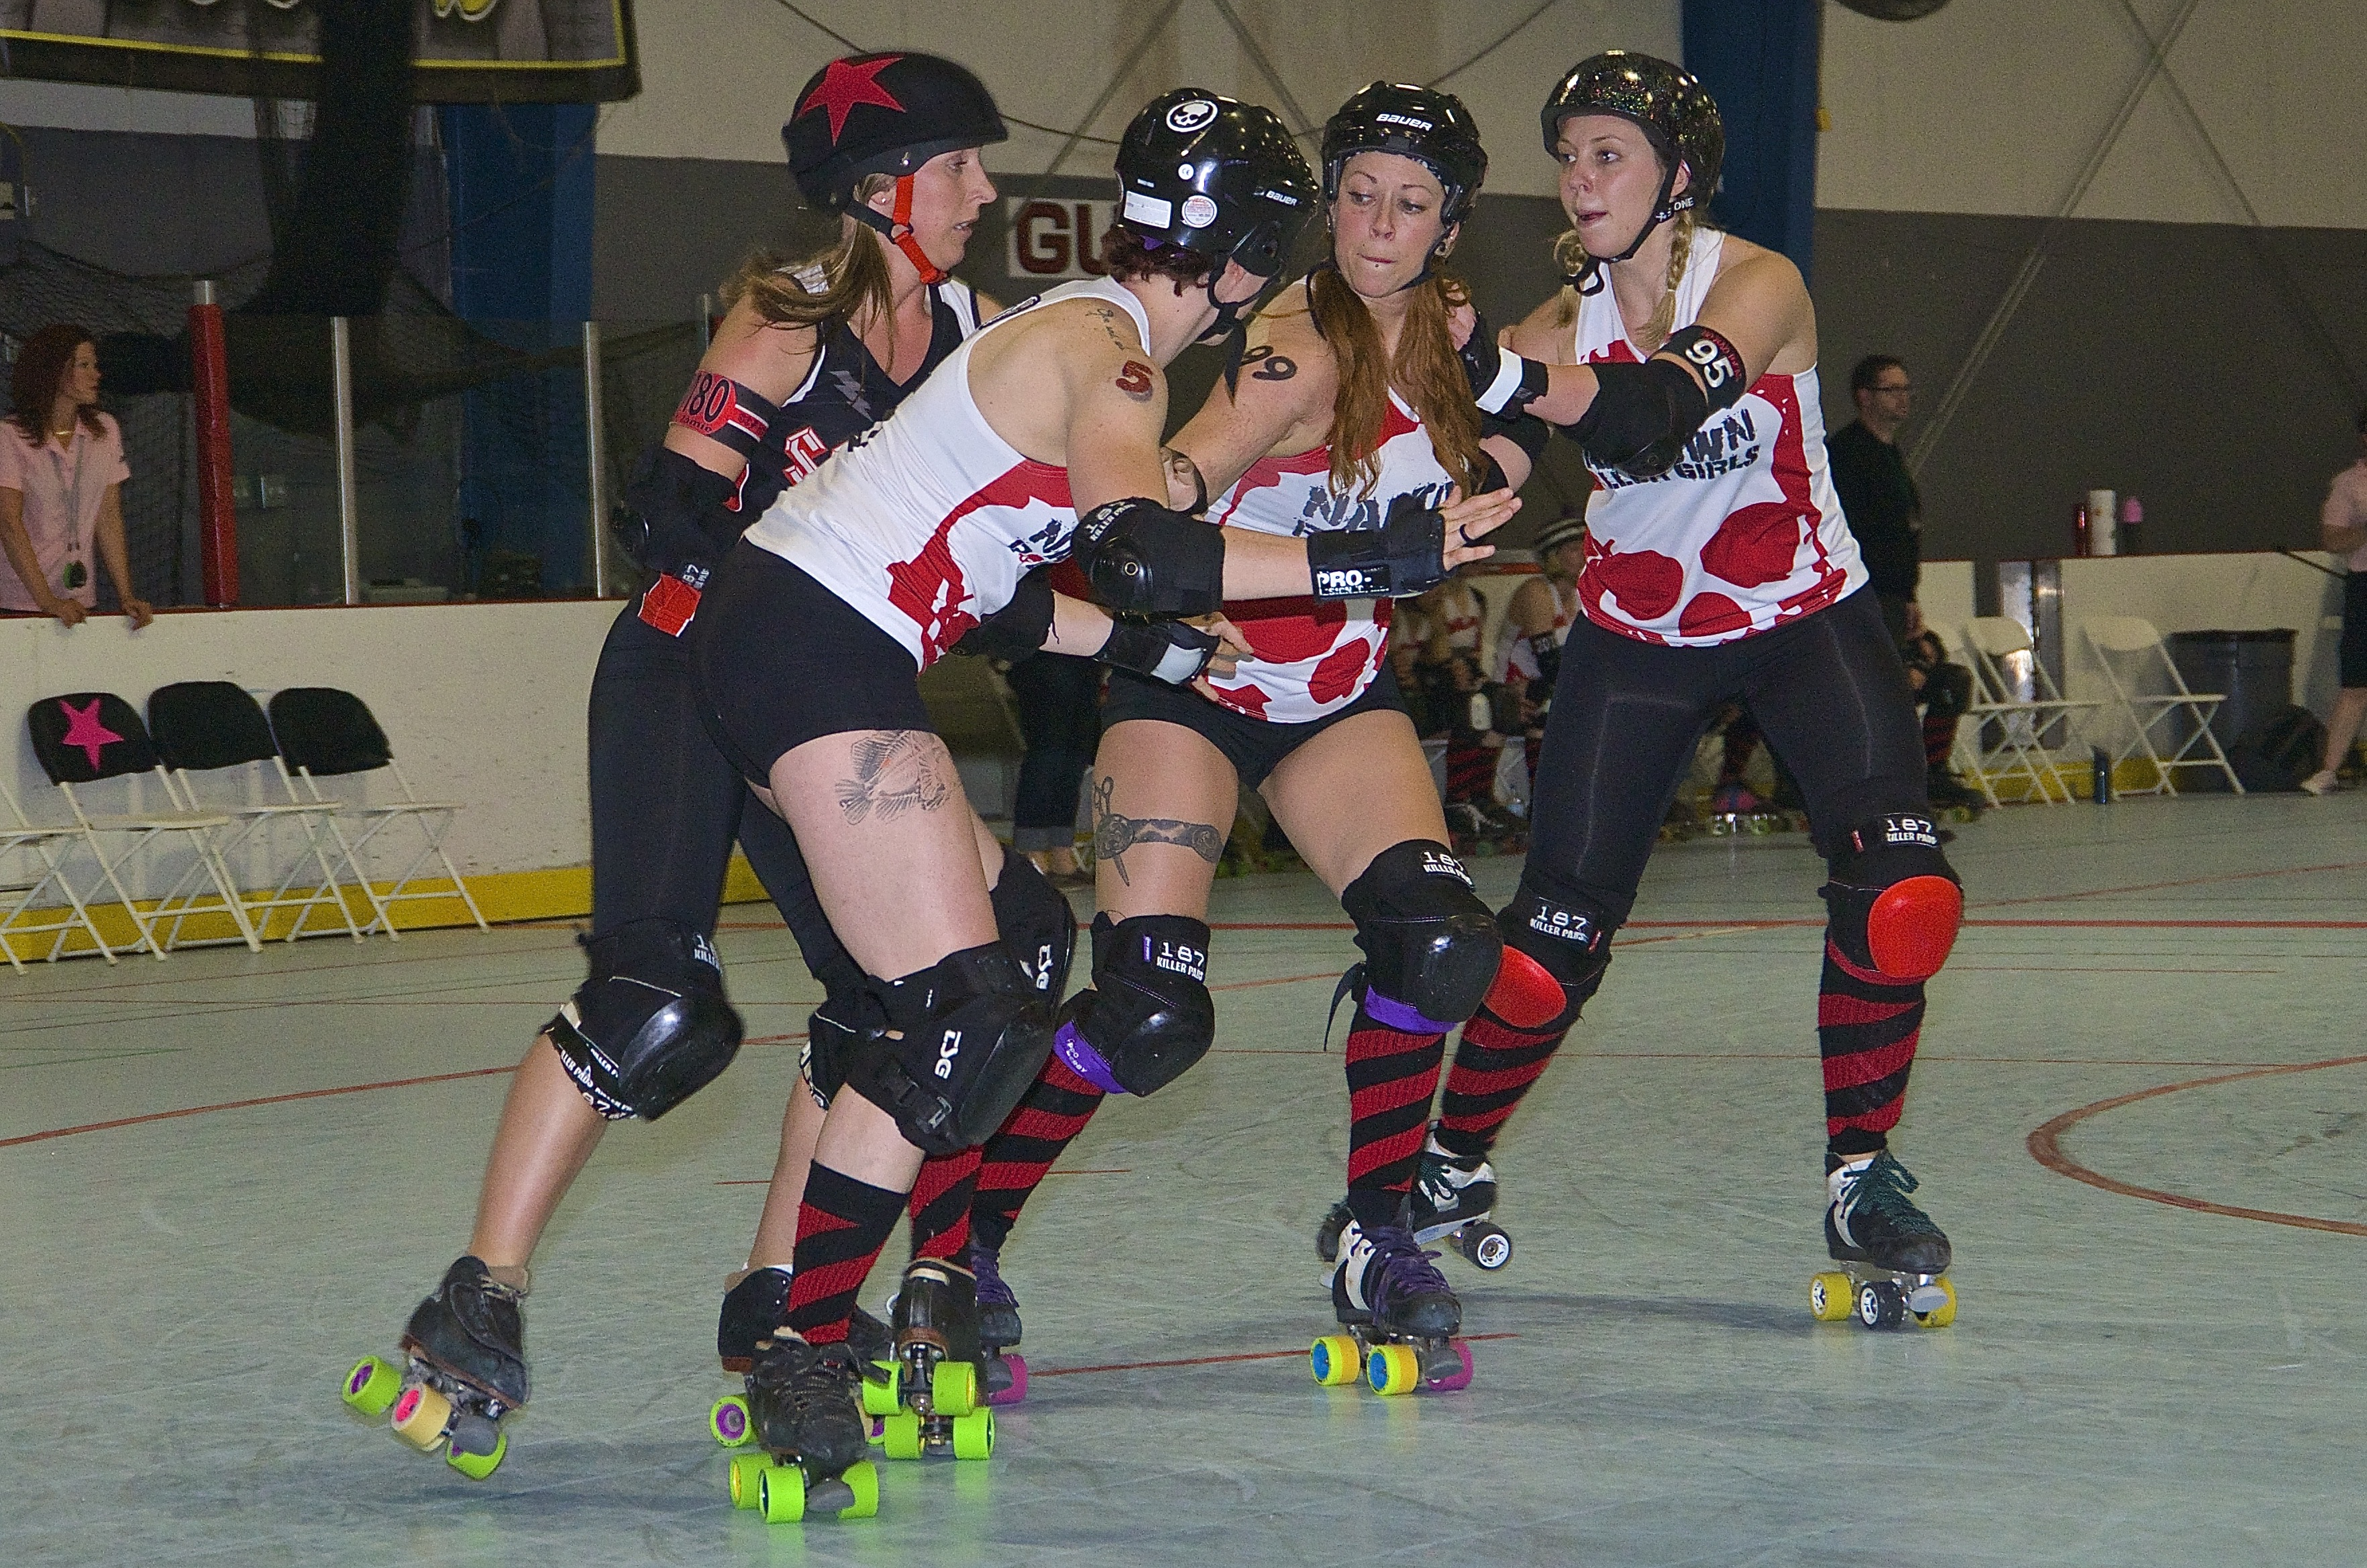 2015 04 11 Skate To Thrill Wftda Roller Derby Game 8 Sc Dc Vs Naptown 21 Flickr Photo